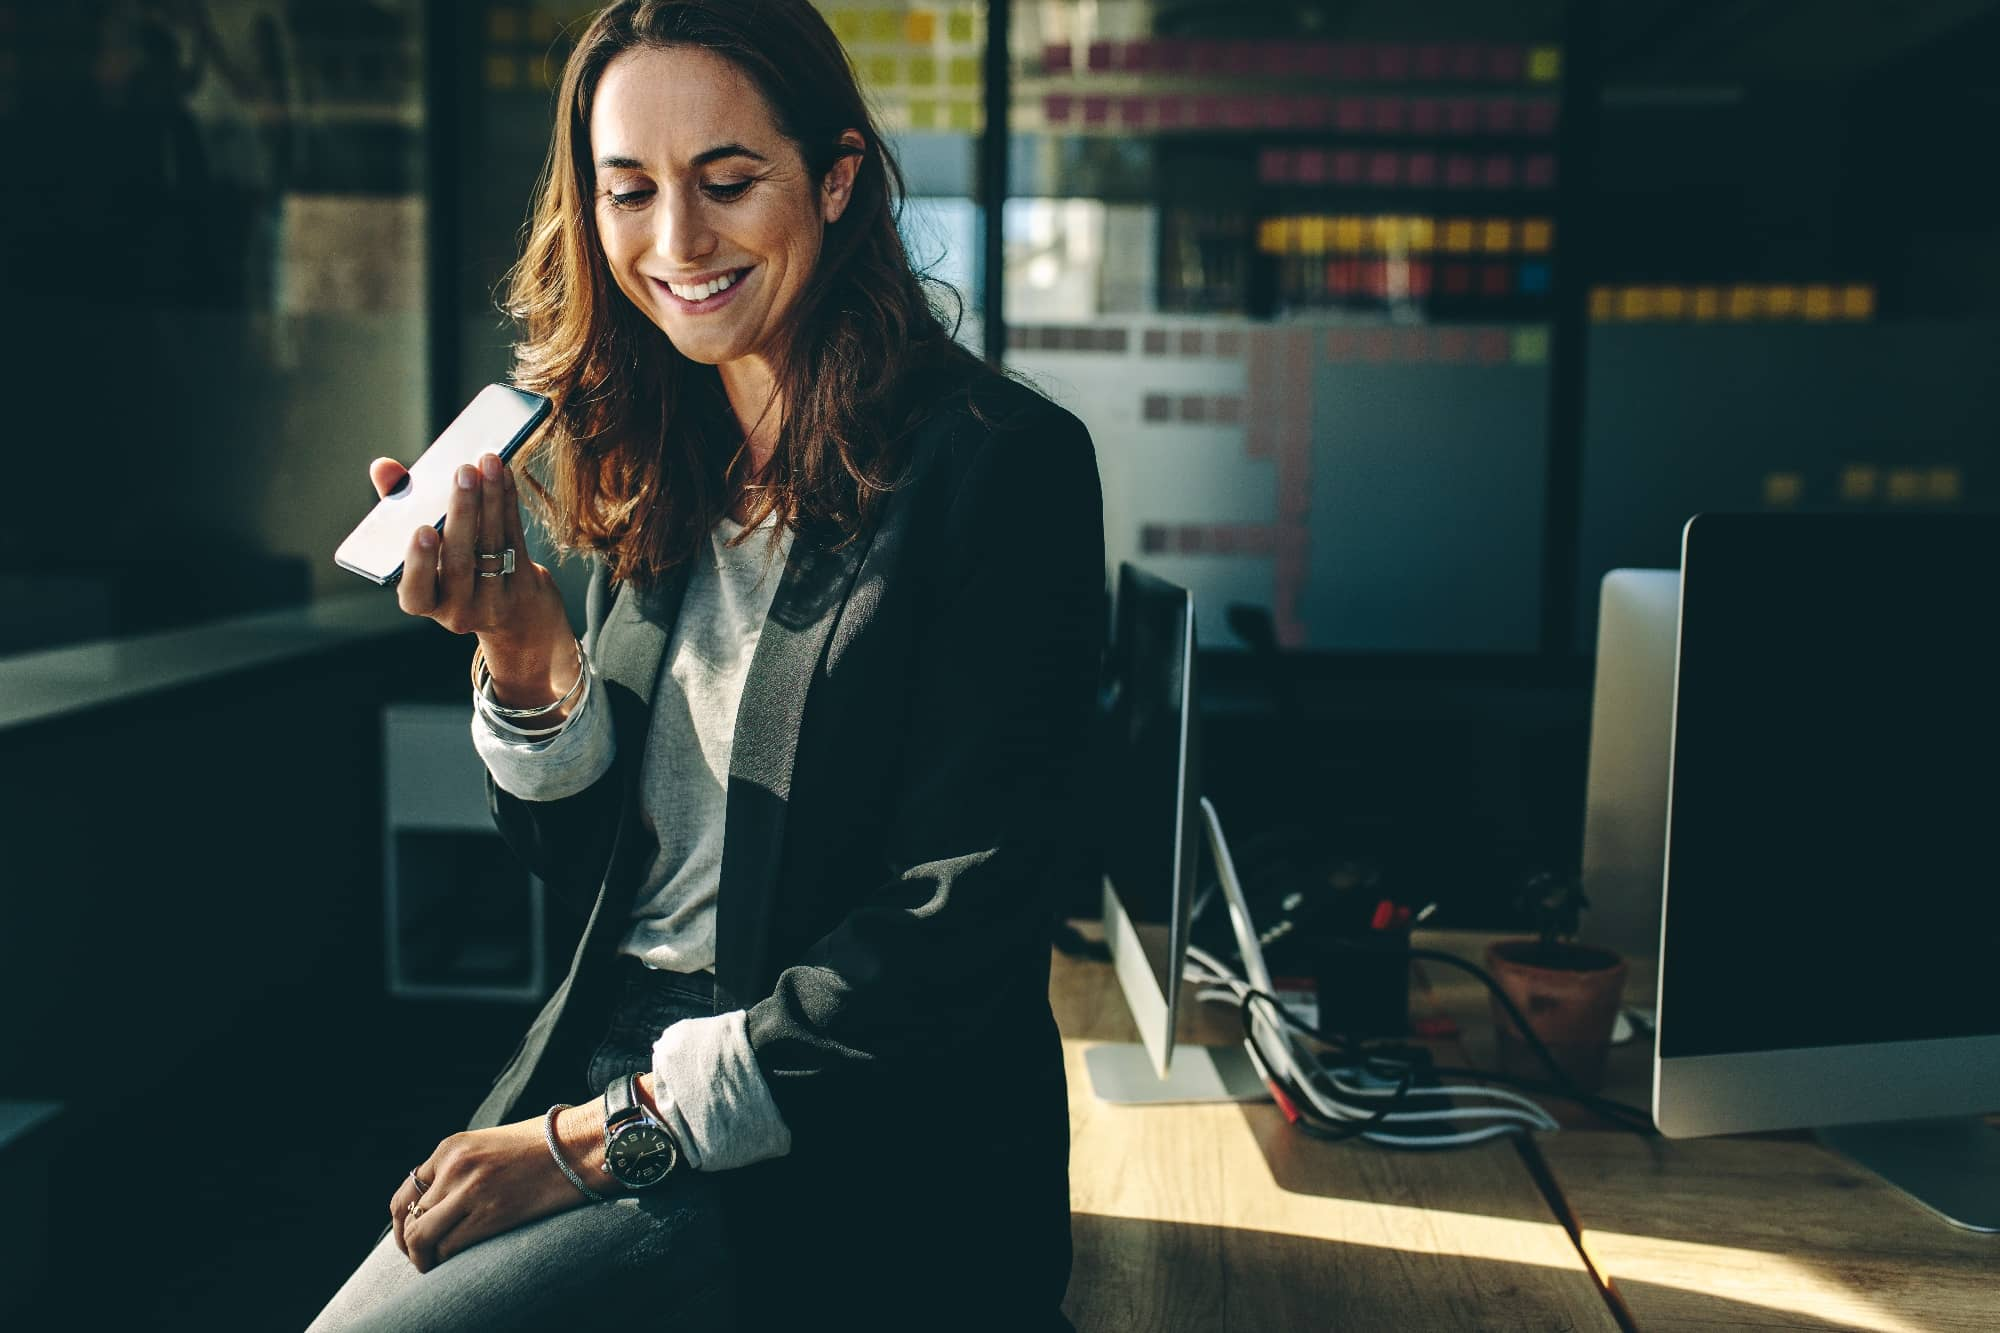 Technology Services from Propel HR